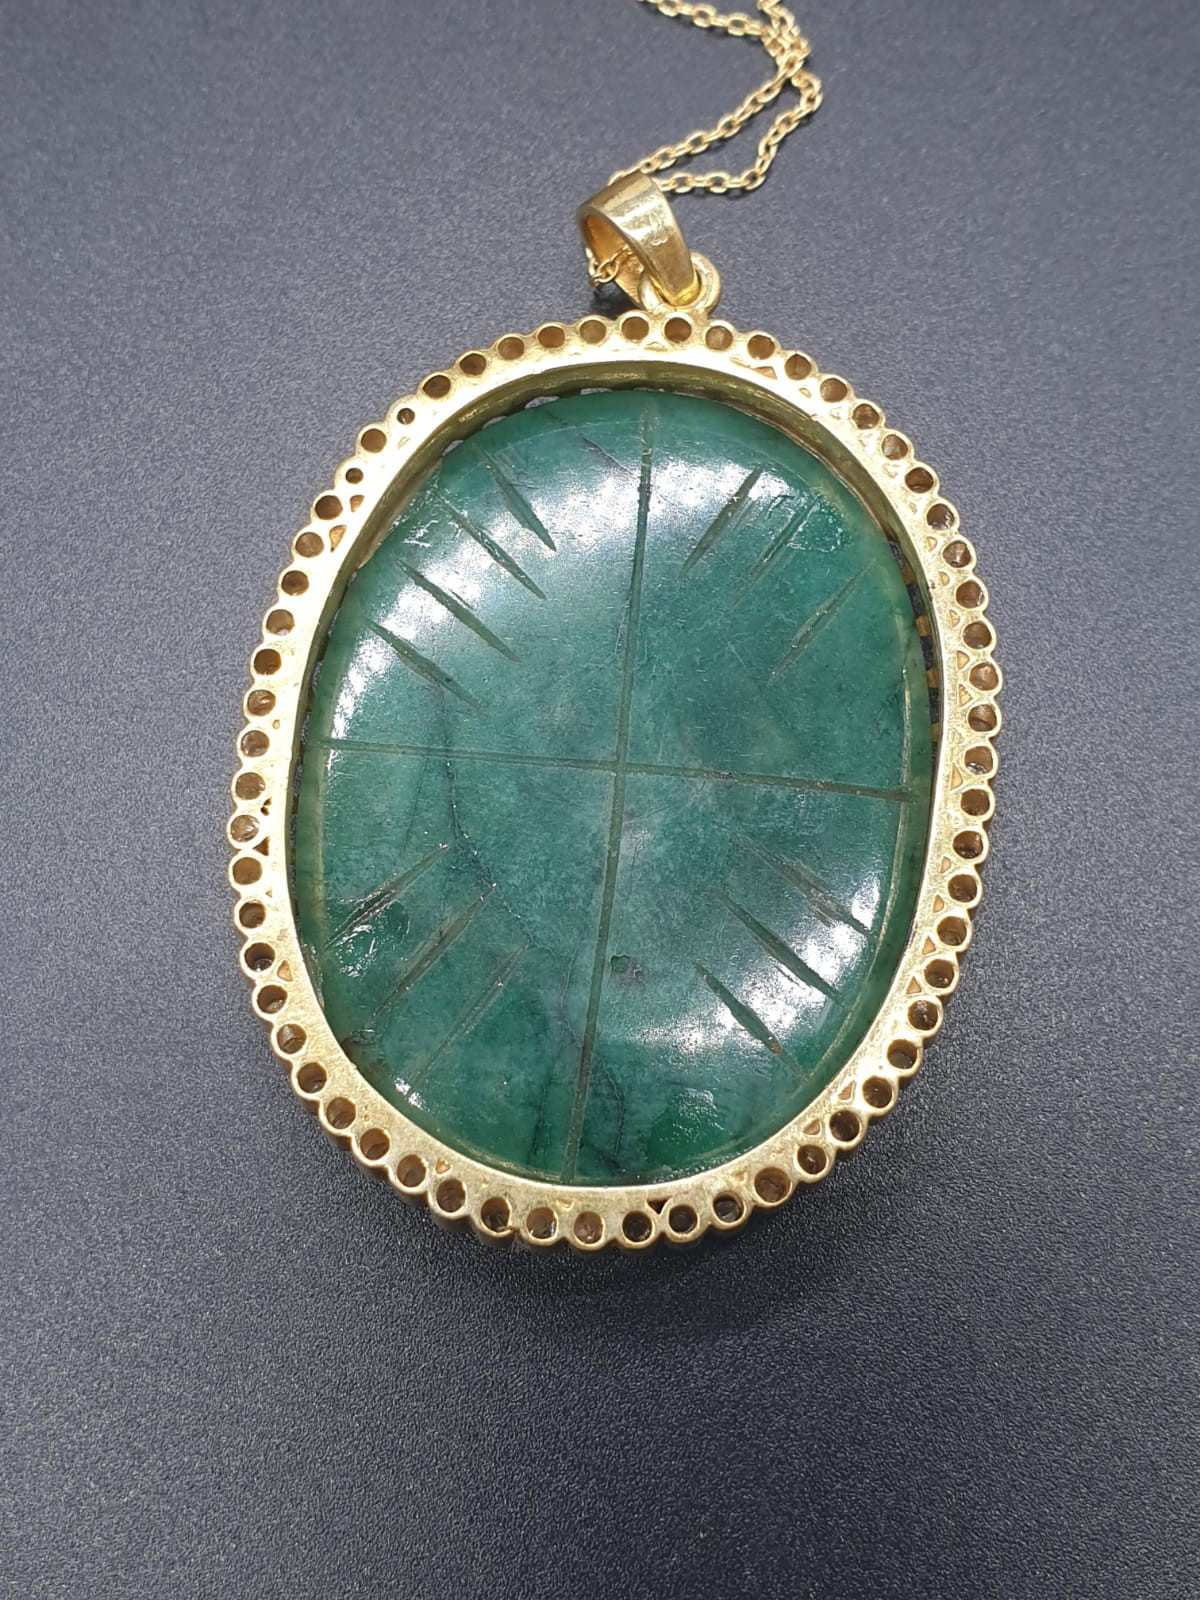 A carved emerald Pendant with a halo of rose cut diamonds in pave setting in sterling silver with - Image 6 of 7